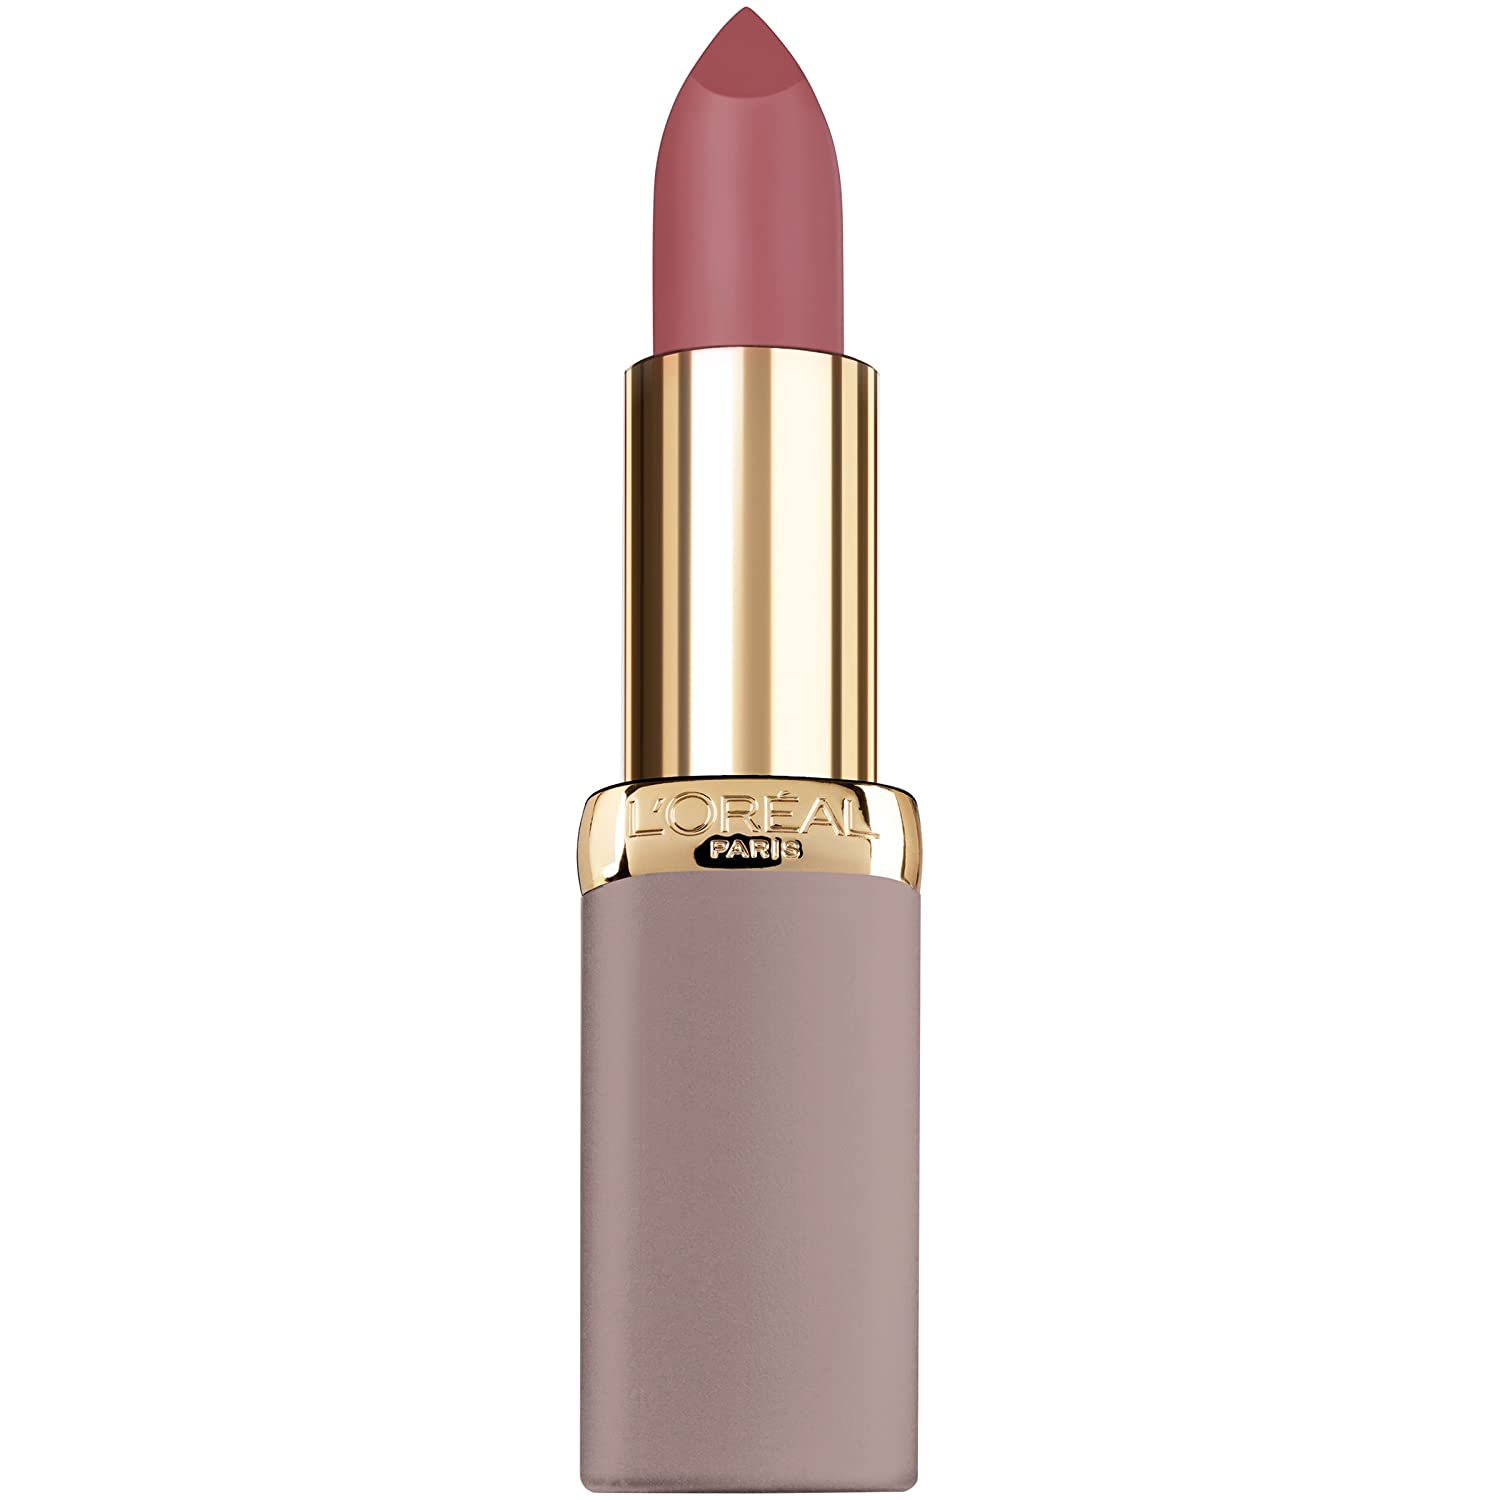 L'Oreal Paris Cosmetics Colour Riche Ultra Matte Highly Pigmented Nude Lipstick, Power Petal, 0.13 Ounce